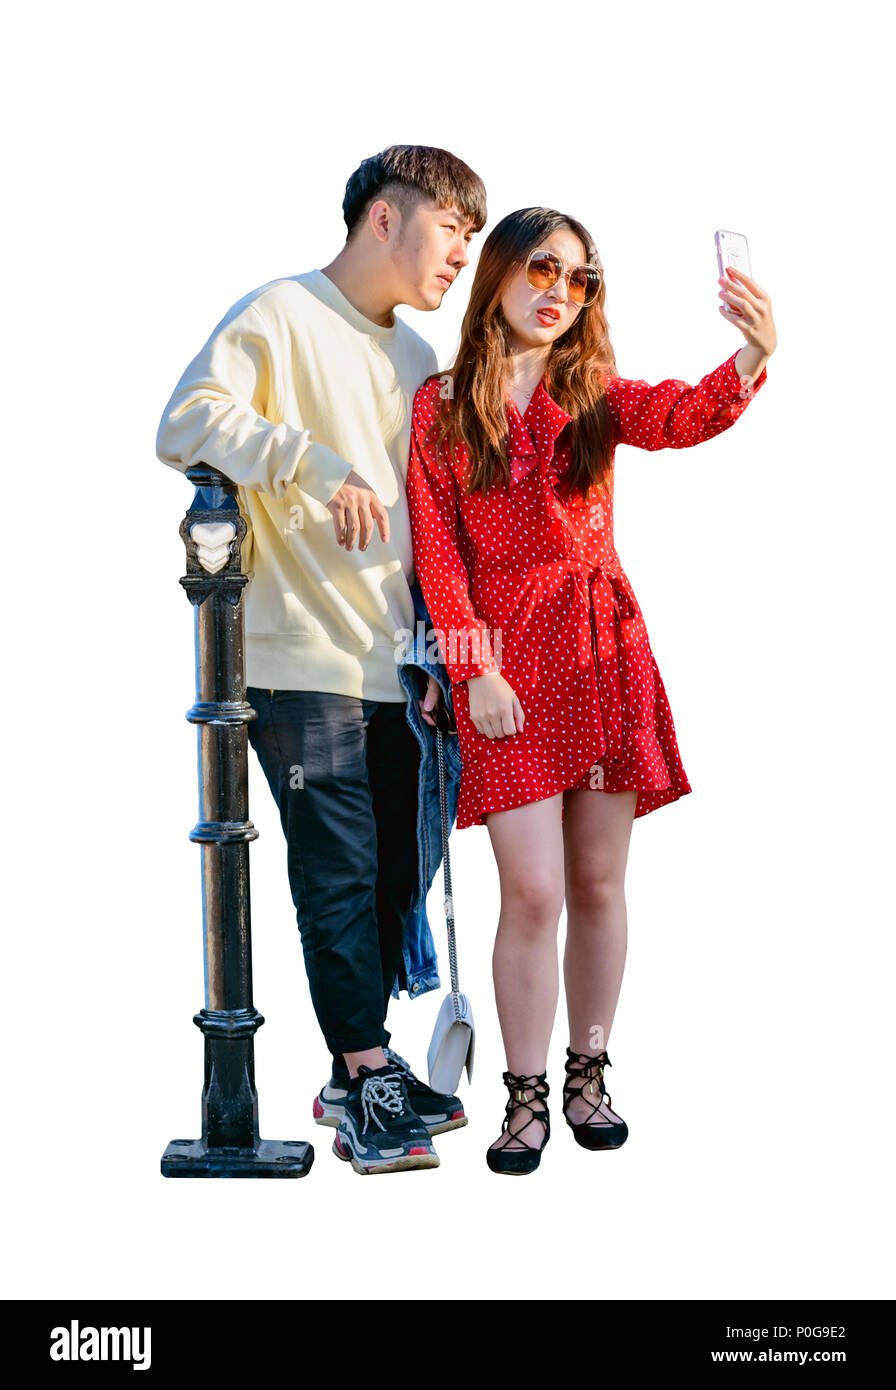 an asian oriental couple posing for a selfie on brighton pier - Stock Image